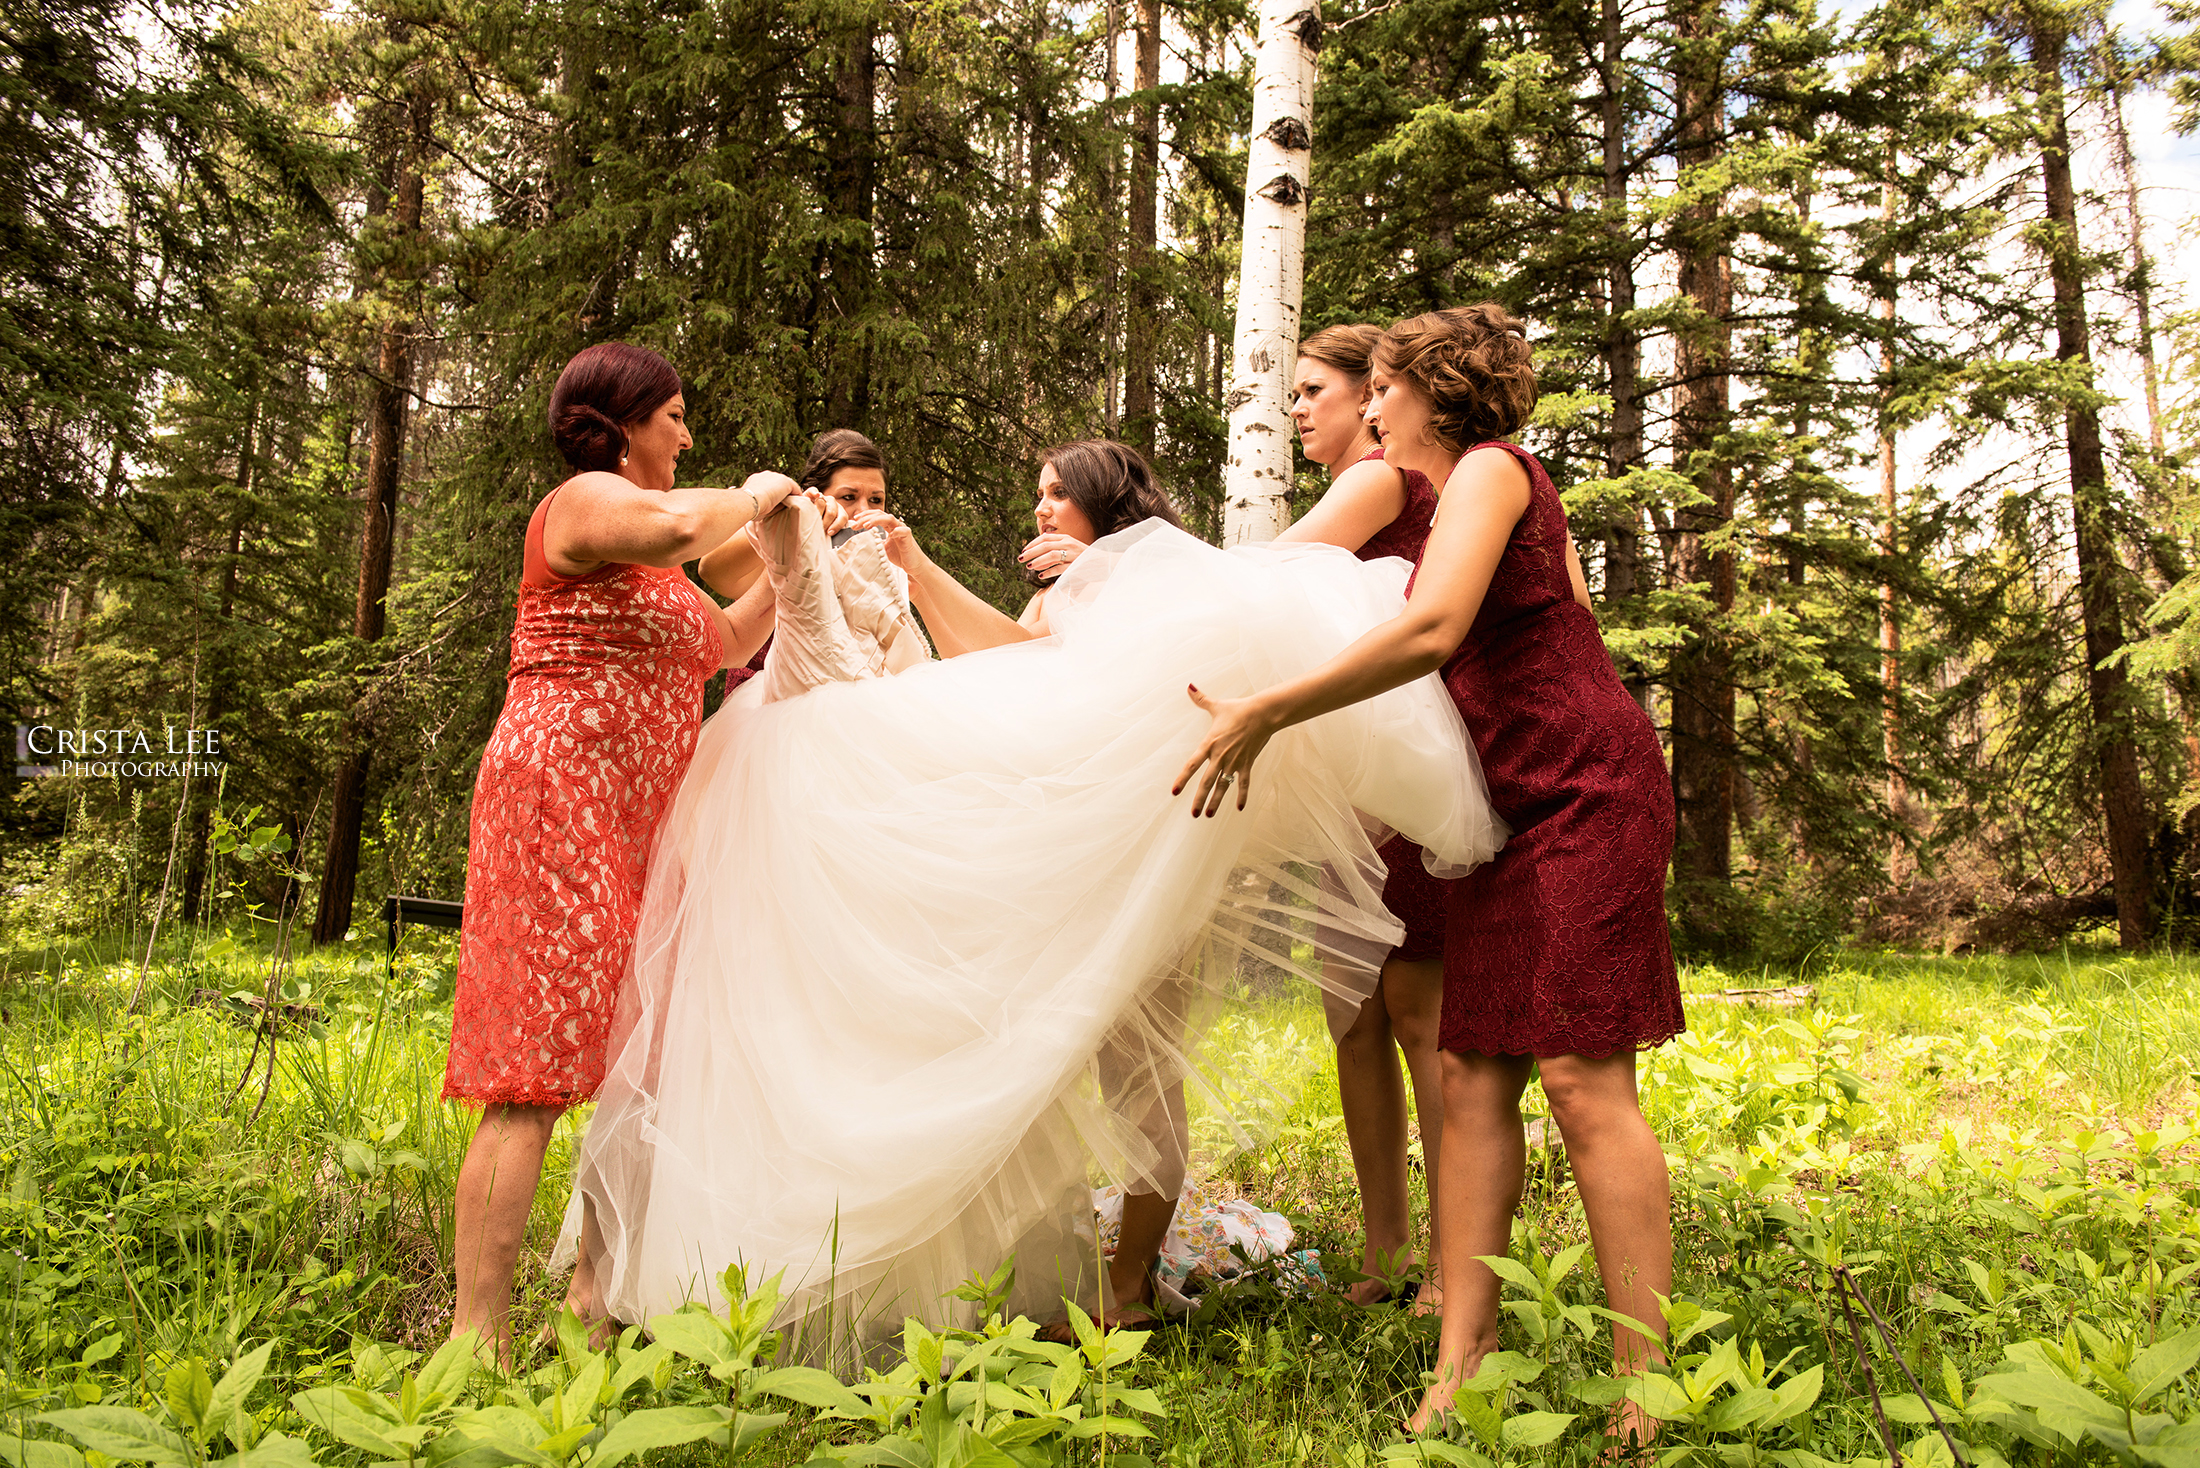 Banff Wedding Photography, Crista Lee Photography